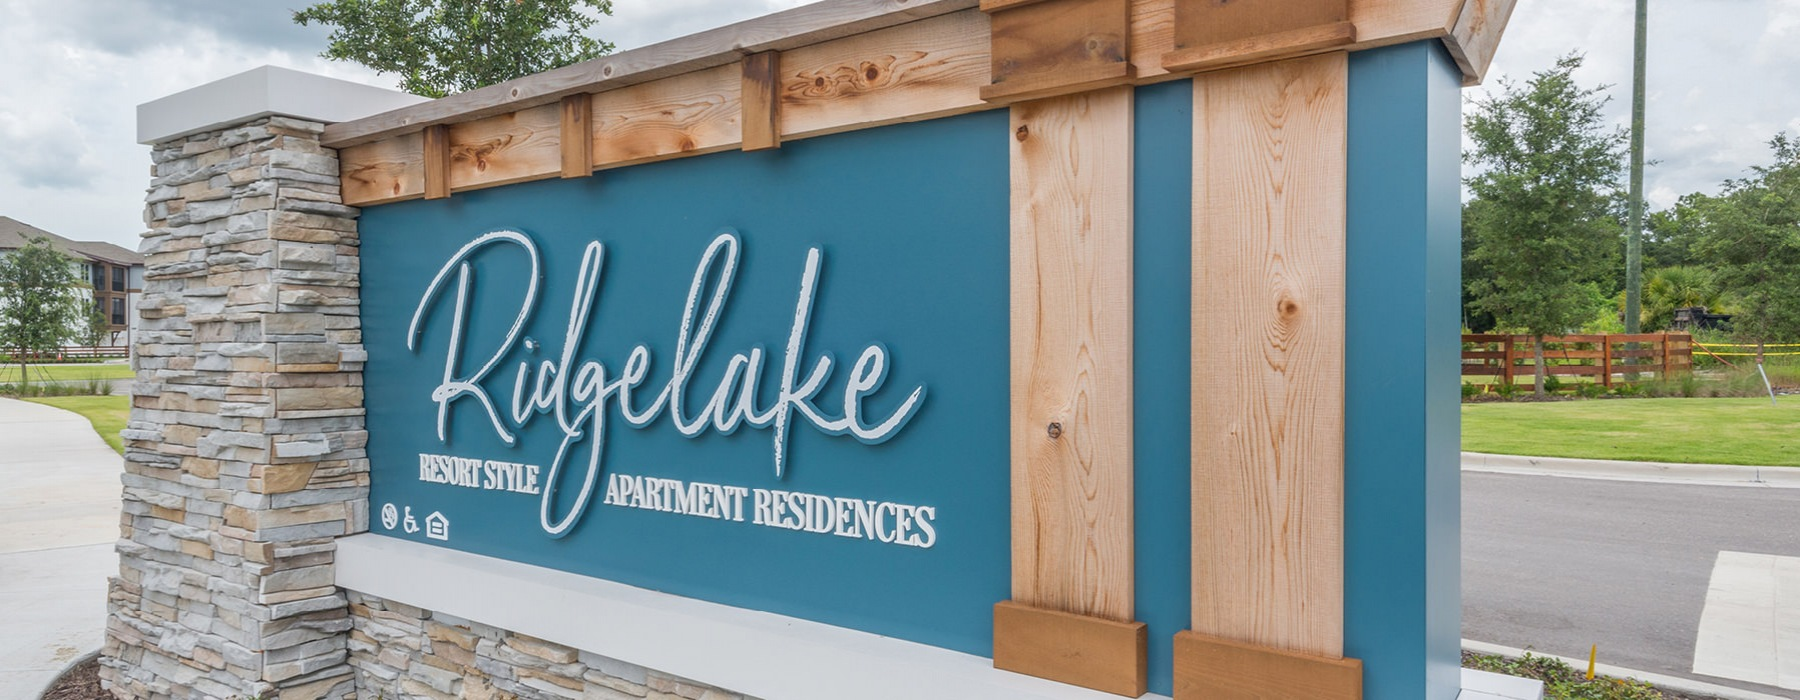 Ridgelake Apartments community sign